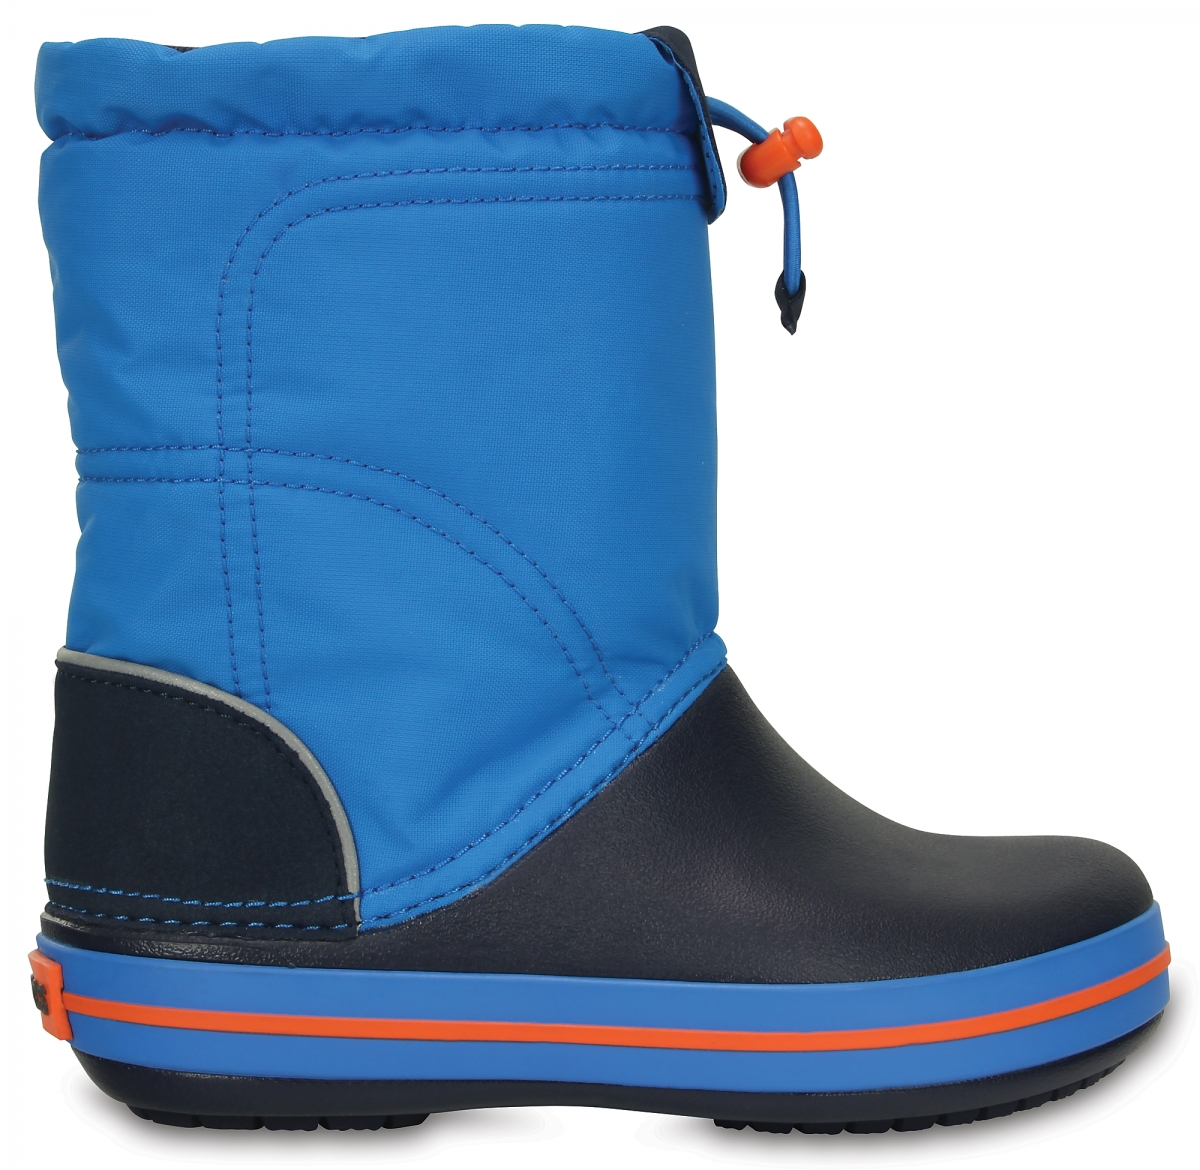 Crocs Crocband LodgePoint Boot Kids - Ocean/Navy, J1 (32-33)